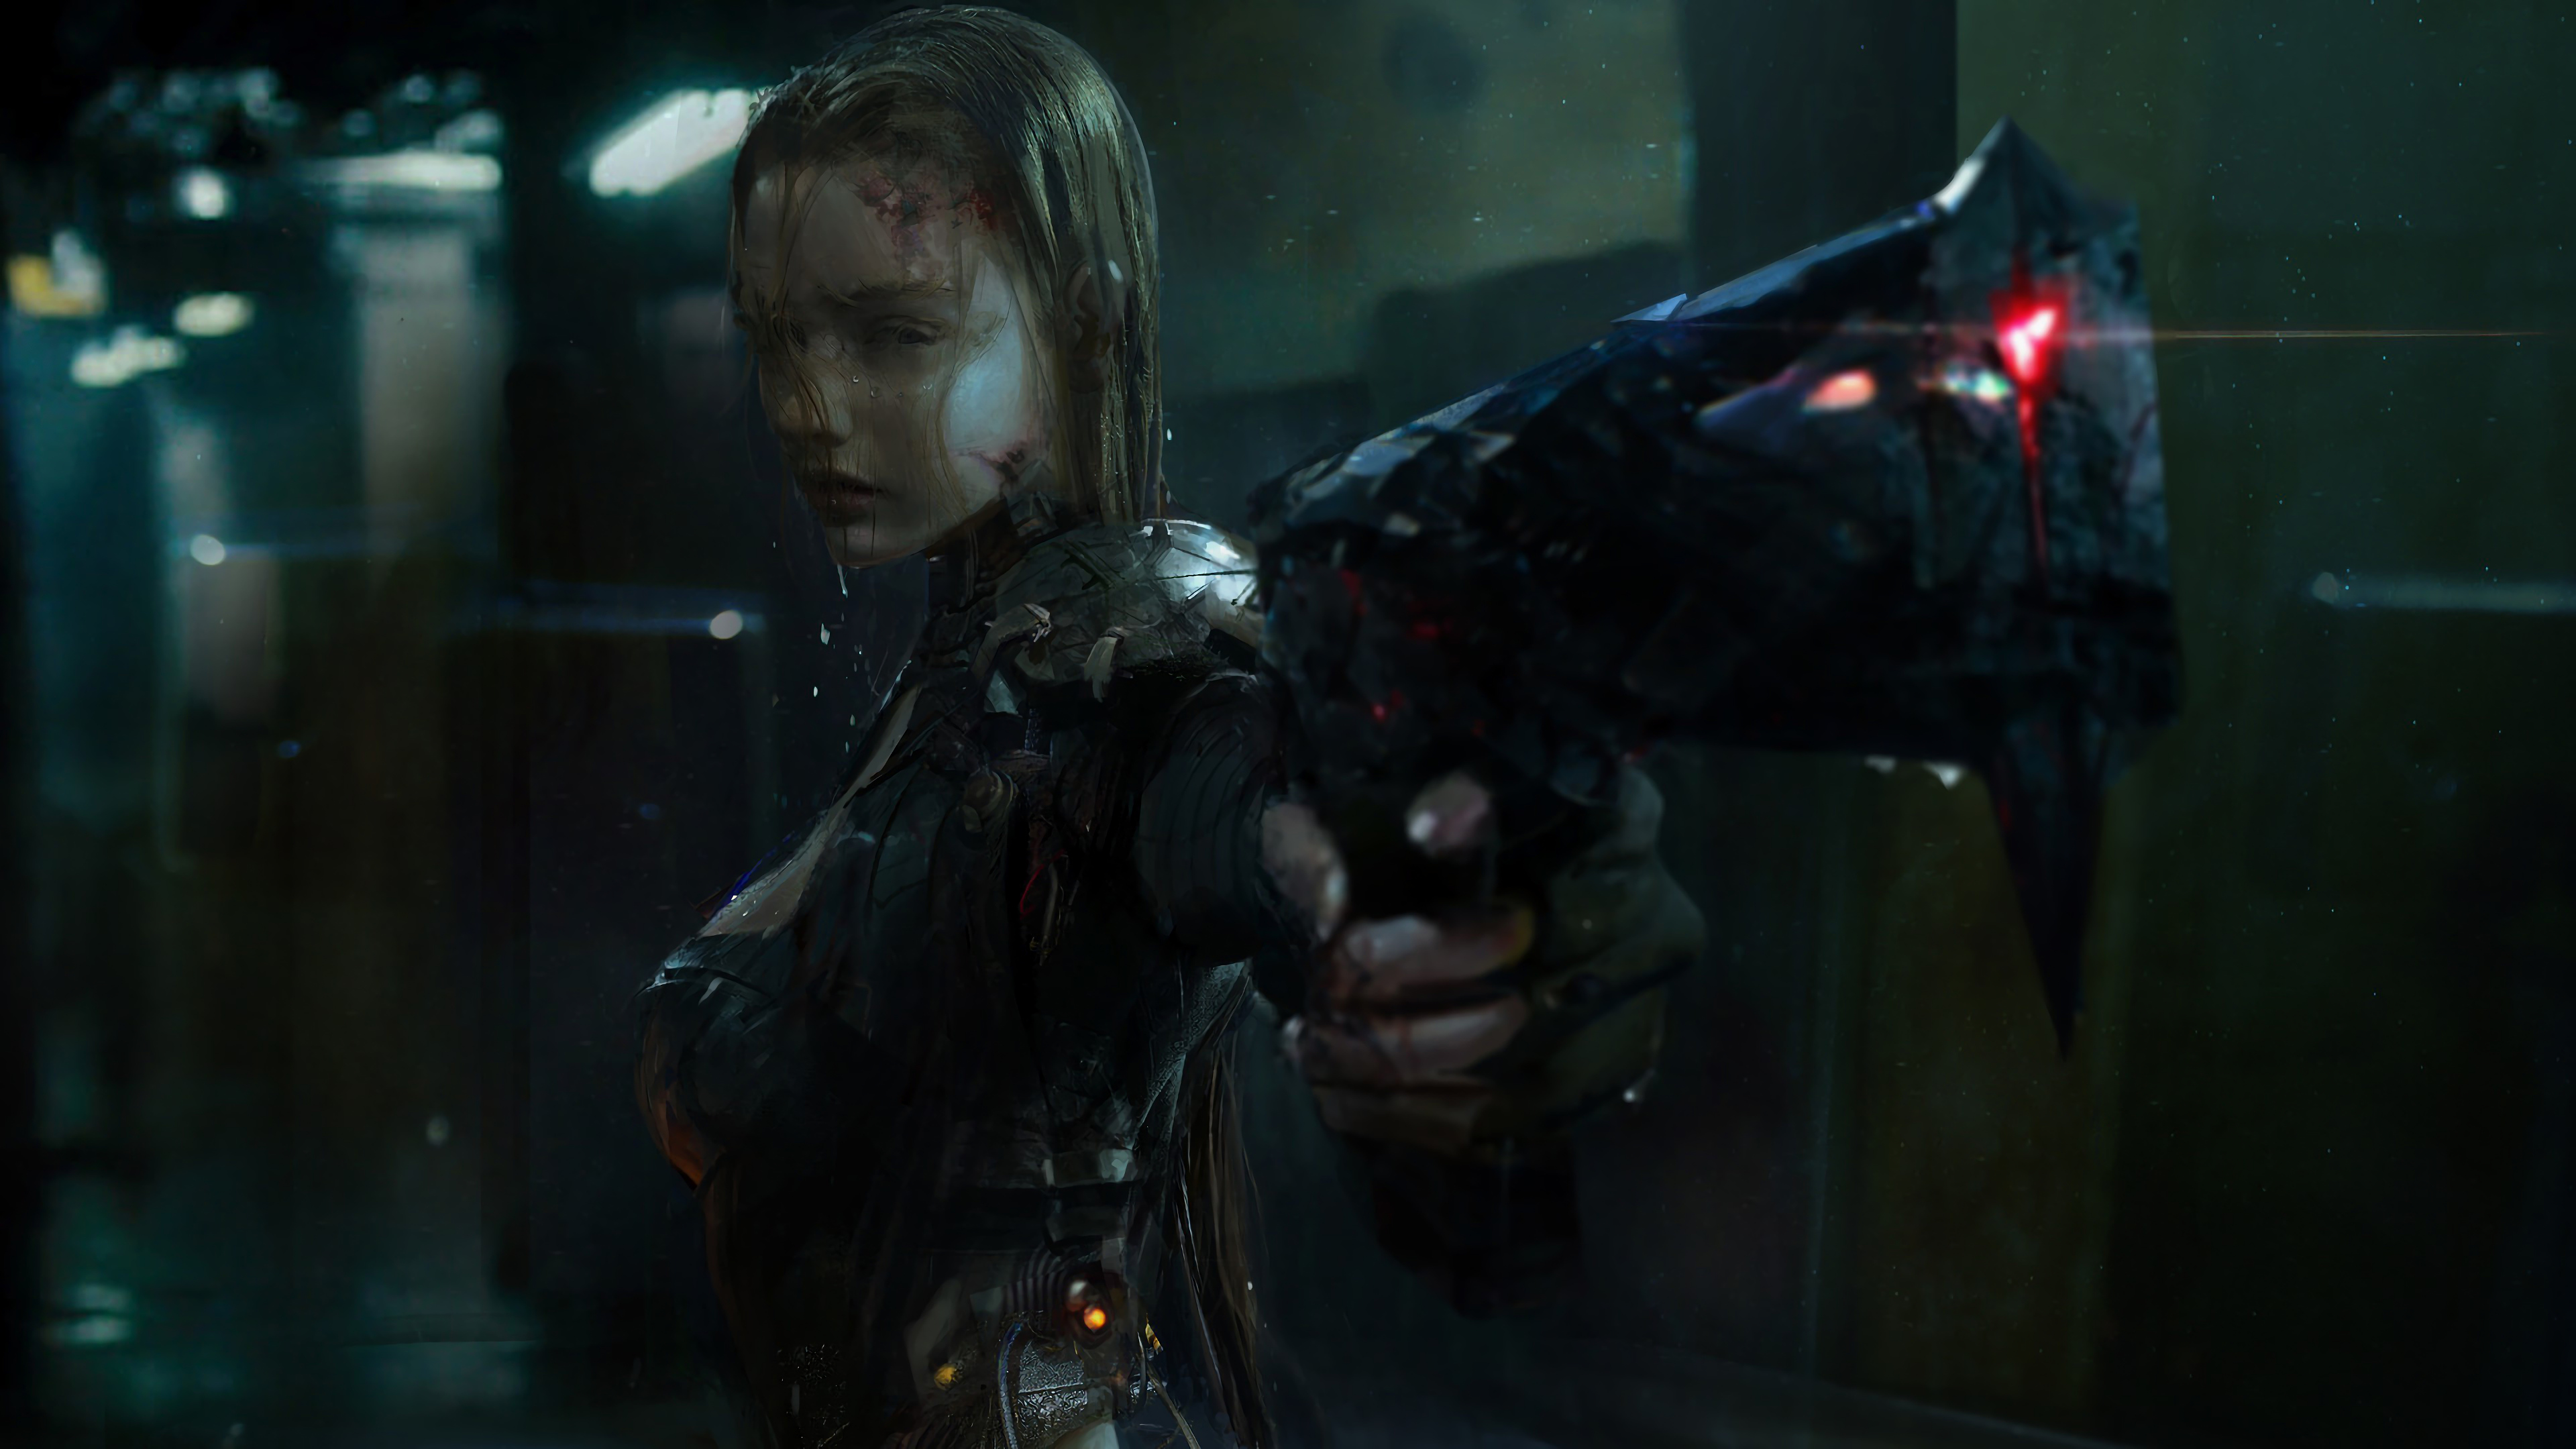 General 3840x2160 cyberpunk science fiction weapon digital art women people Huang Fan